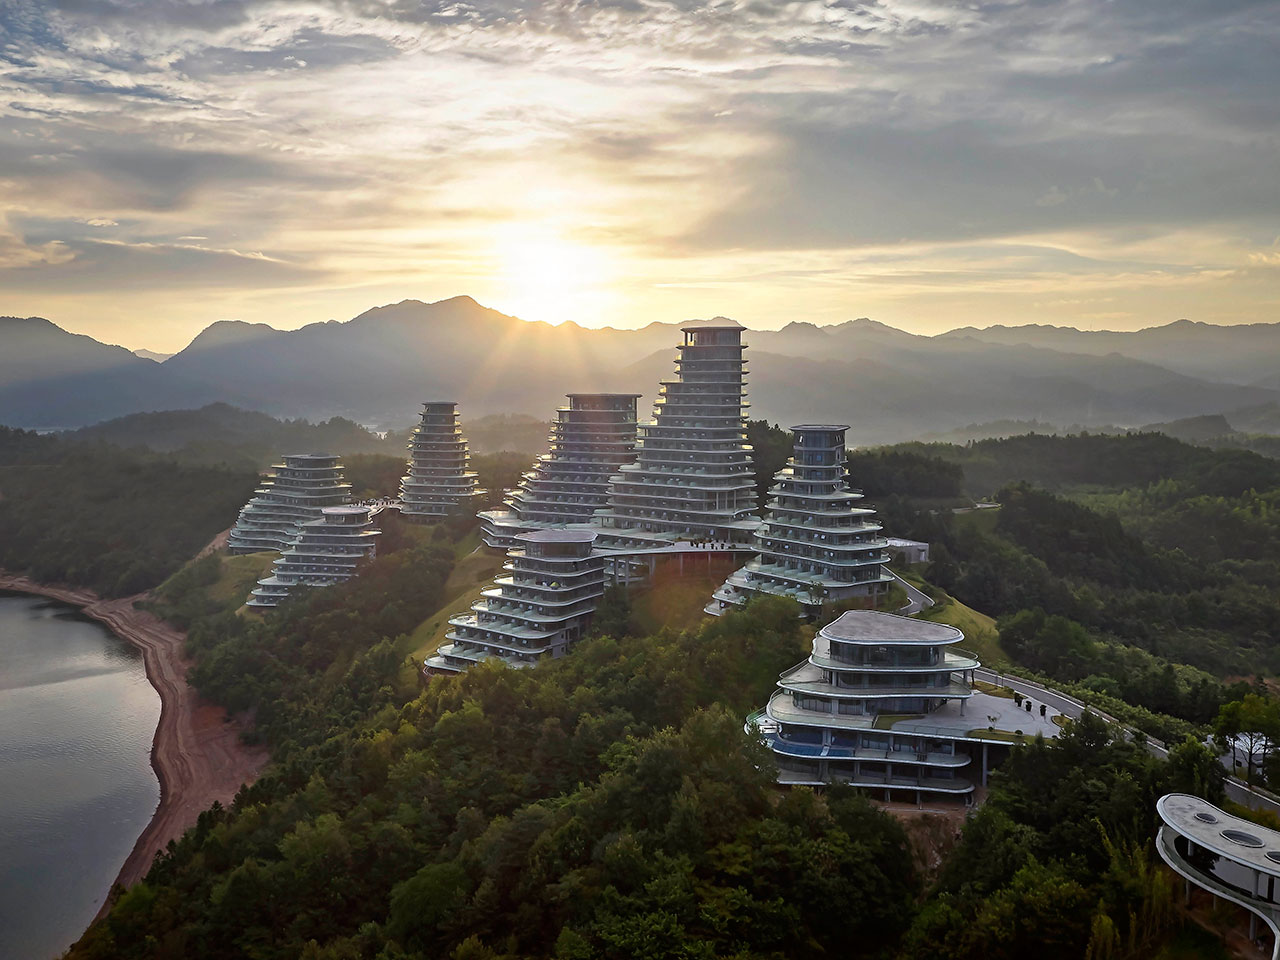 BMW Mountain View >> The Spiritual Symbiosis of Architecture and Nature in ...